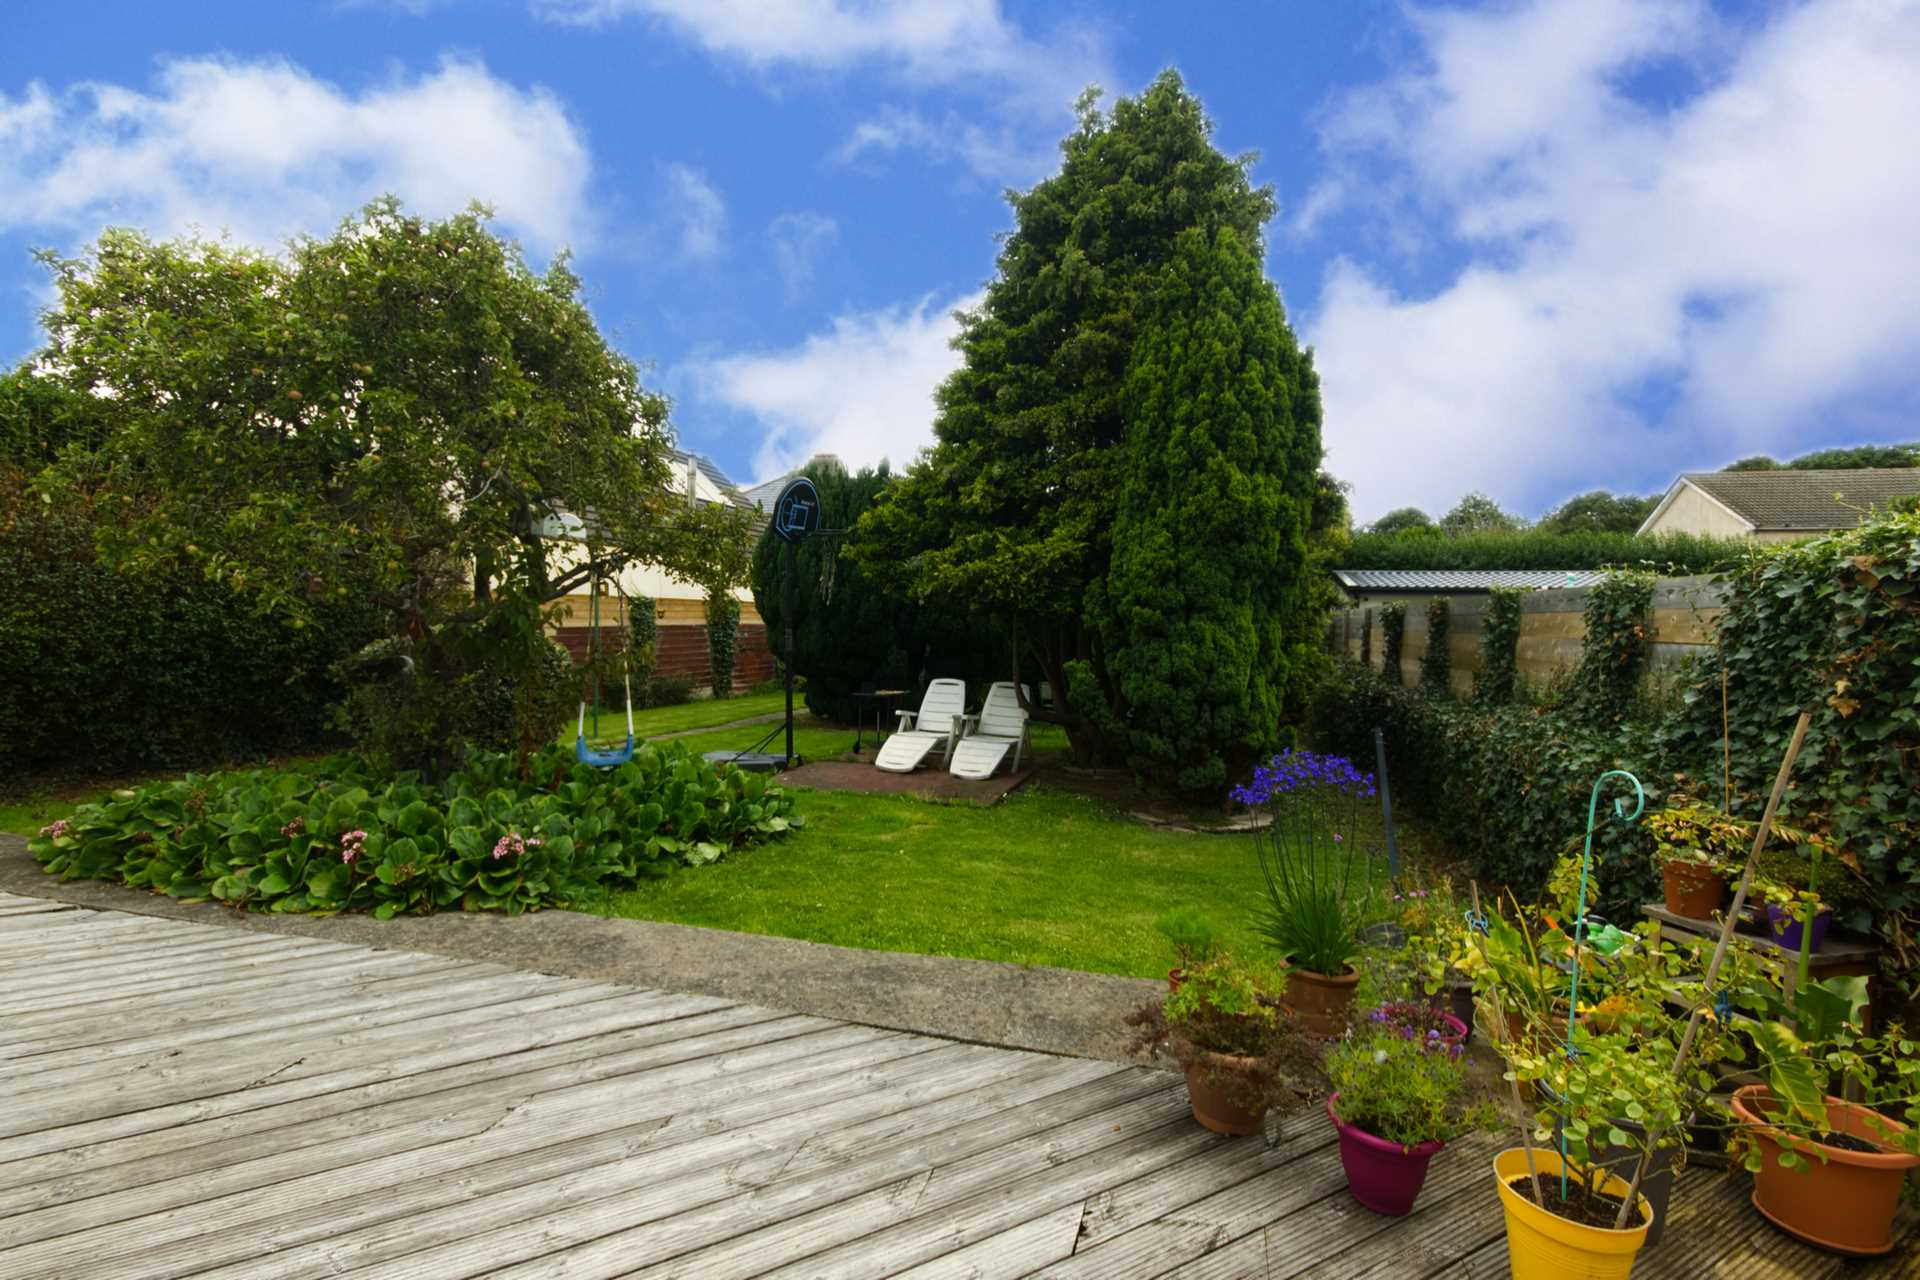 186 Kimmage Road West, Kimmage, Dublin 12, Image 25